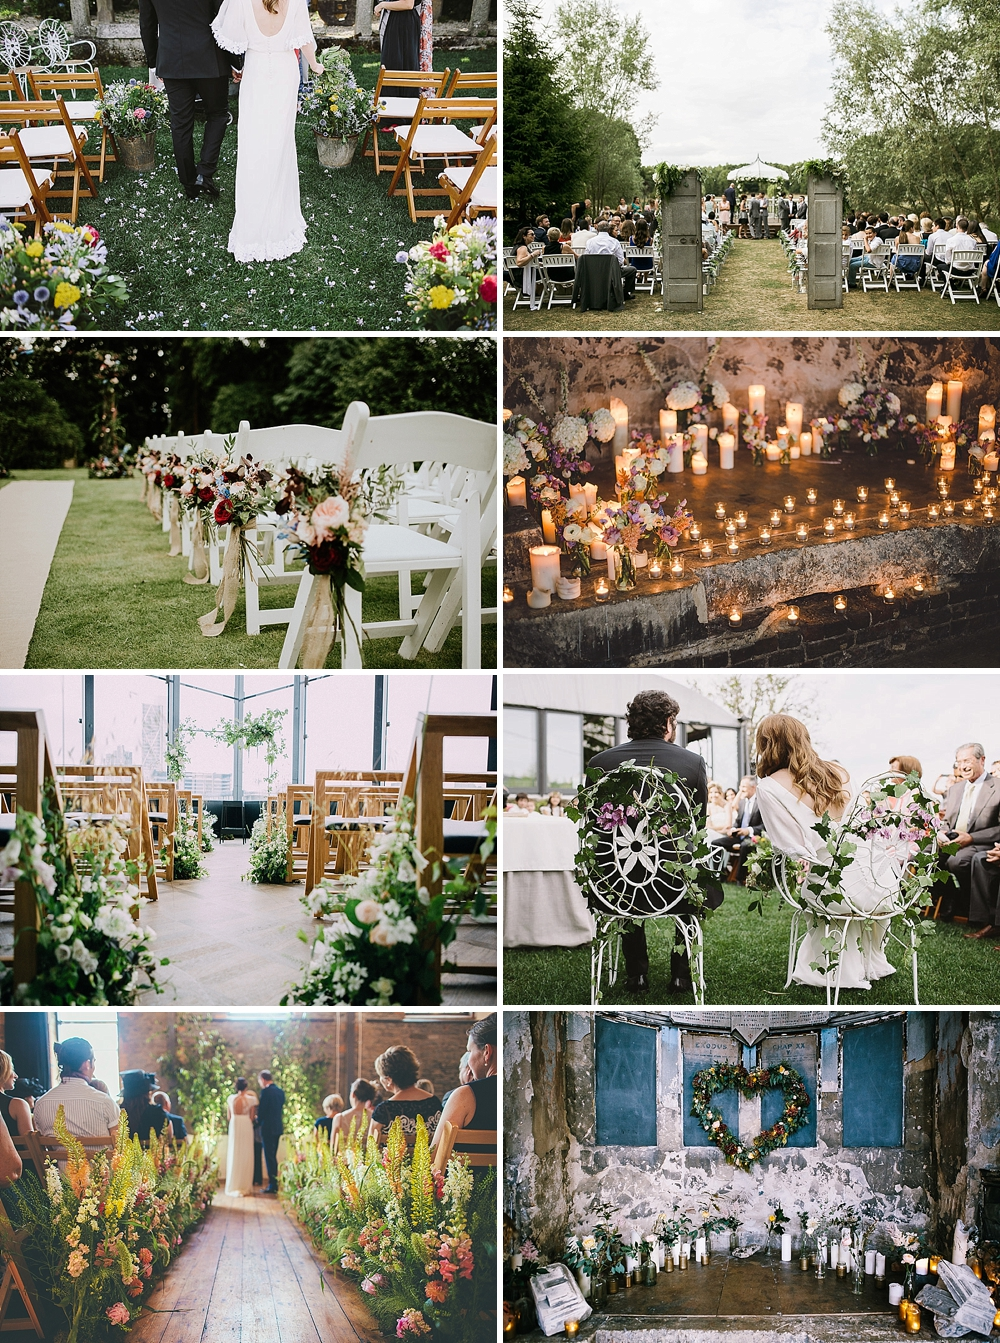 Beautiful and unique inspiration on how to decorate your wedding aisle for your big day using floral arches, vintage doors and romantic candles